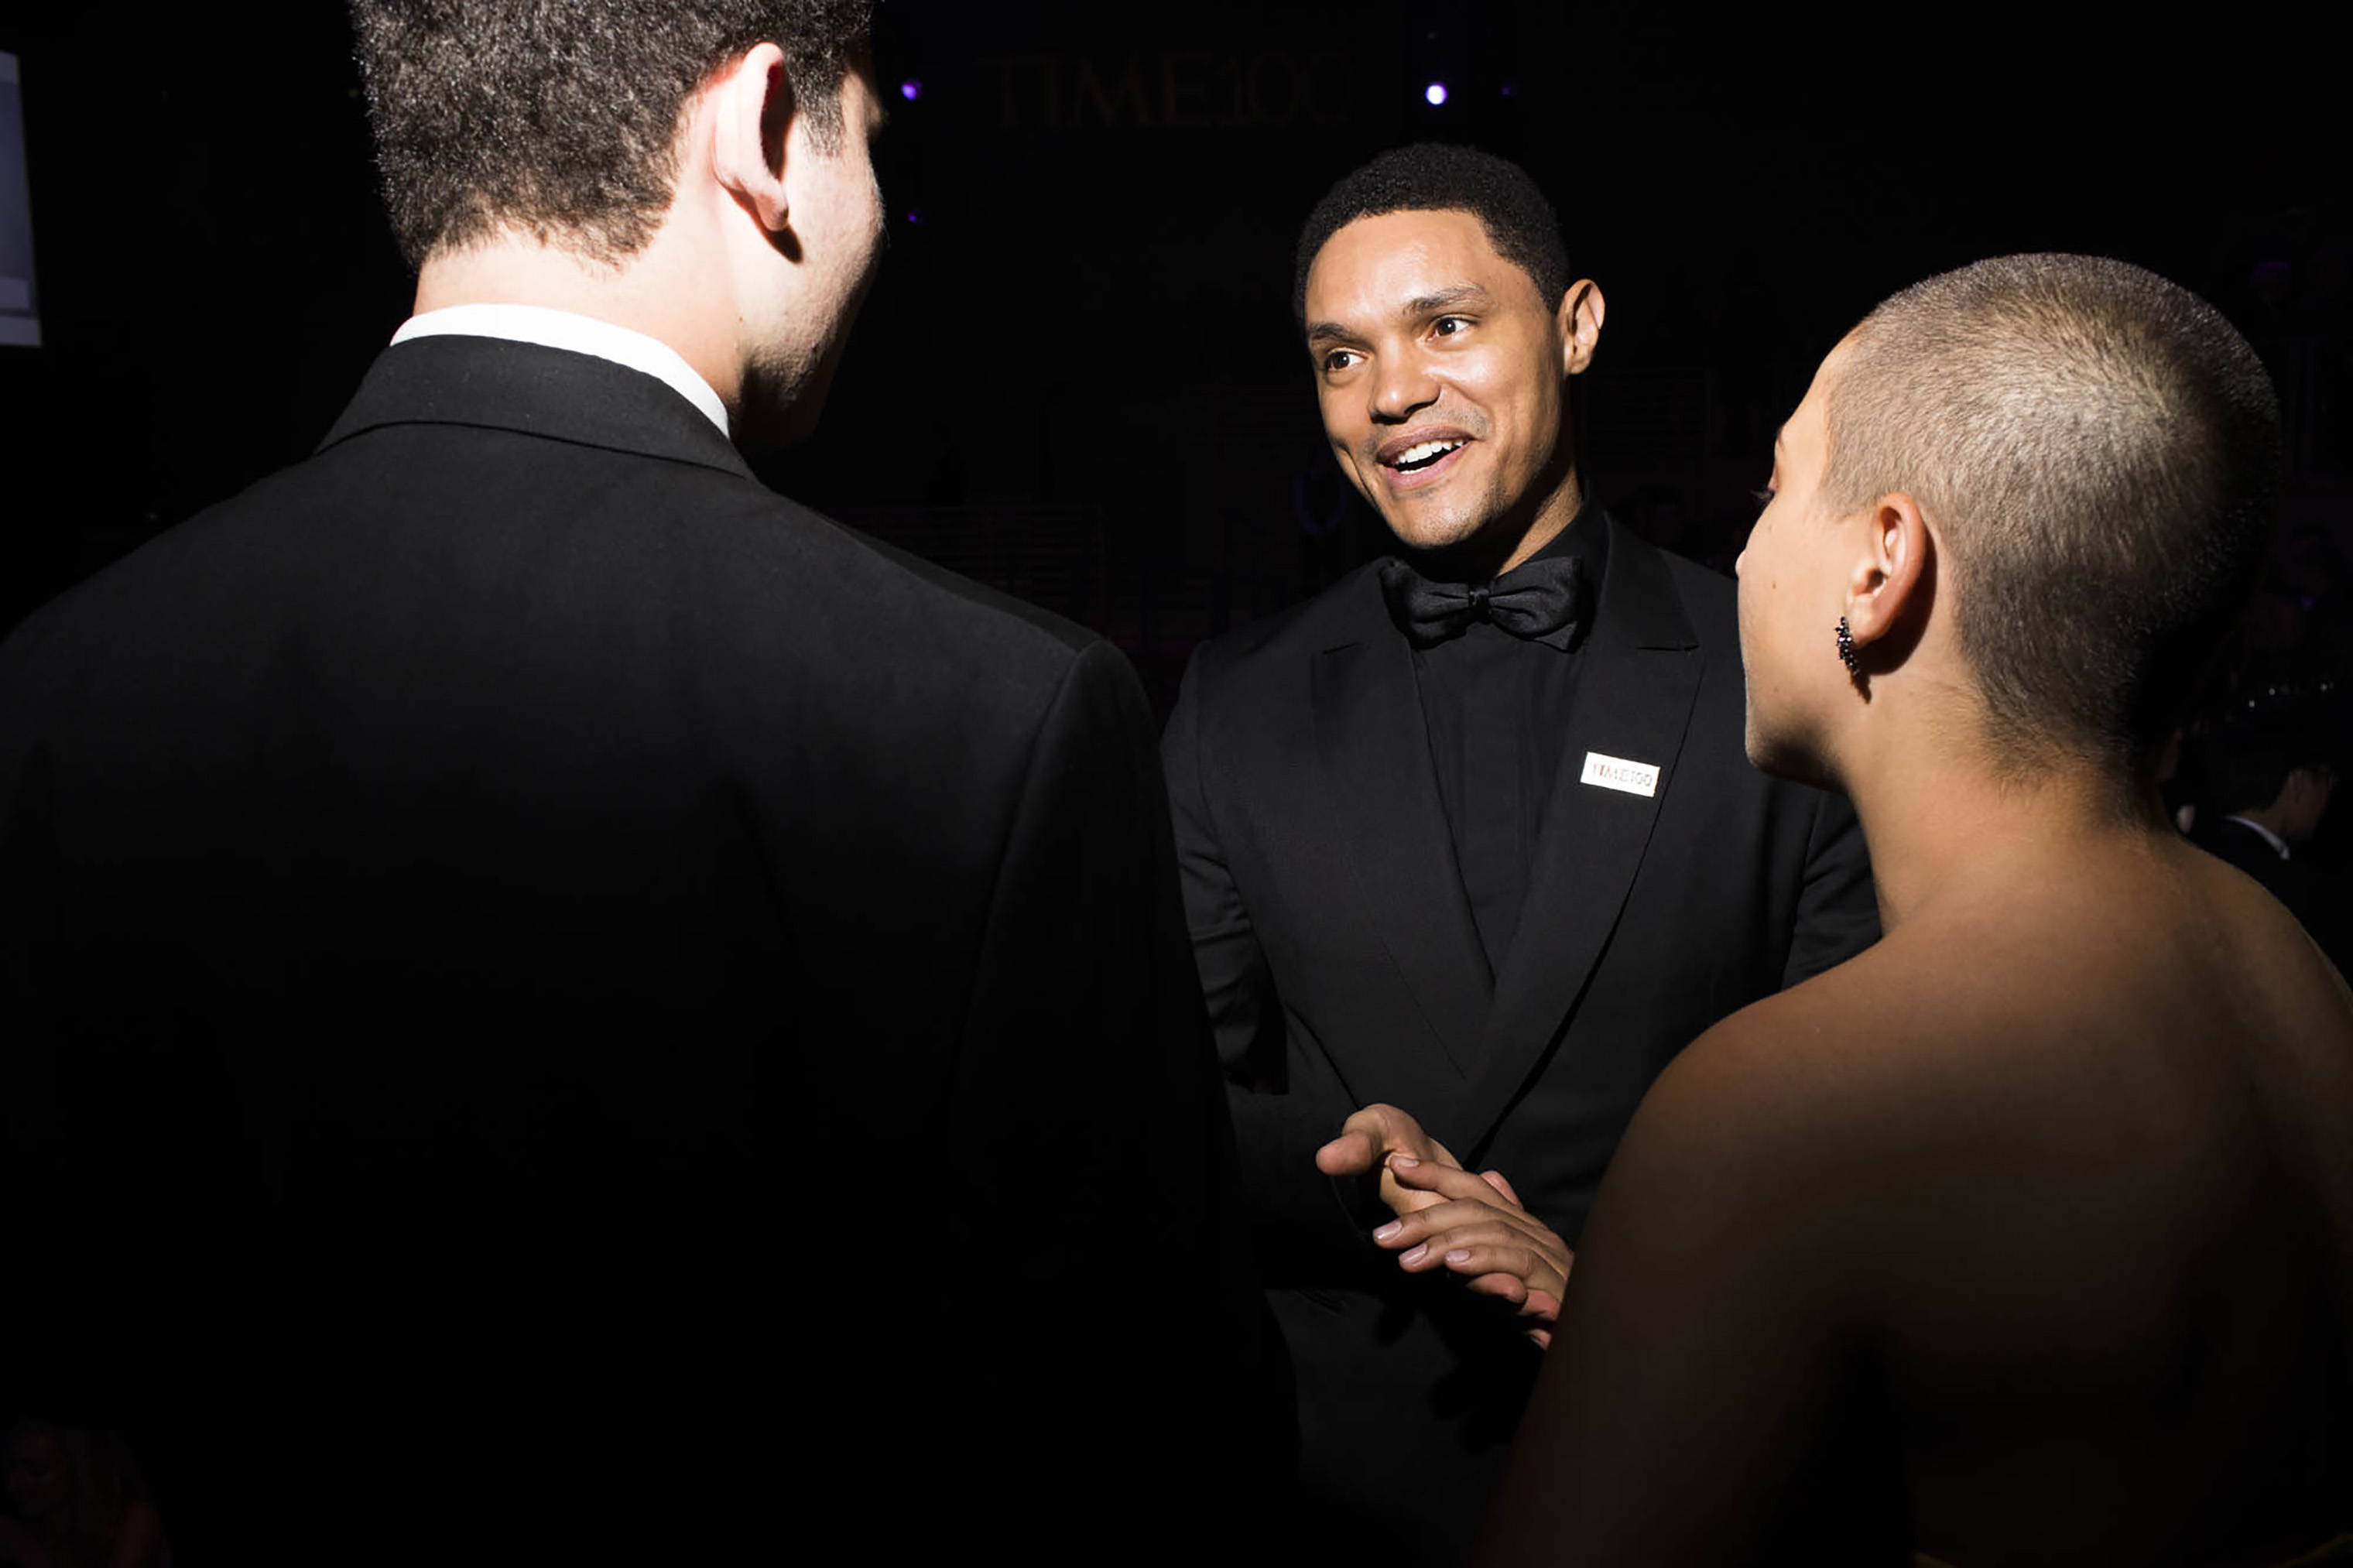 Trevor Noah speaks with Parkland activists Alex Wind and Emma Gonzalez at the Time 100 Gala at Jazz at Lincoln Center on April 24, 2018 in New York City.